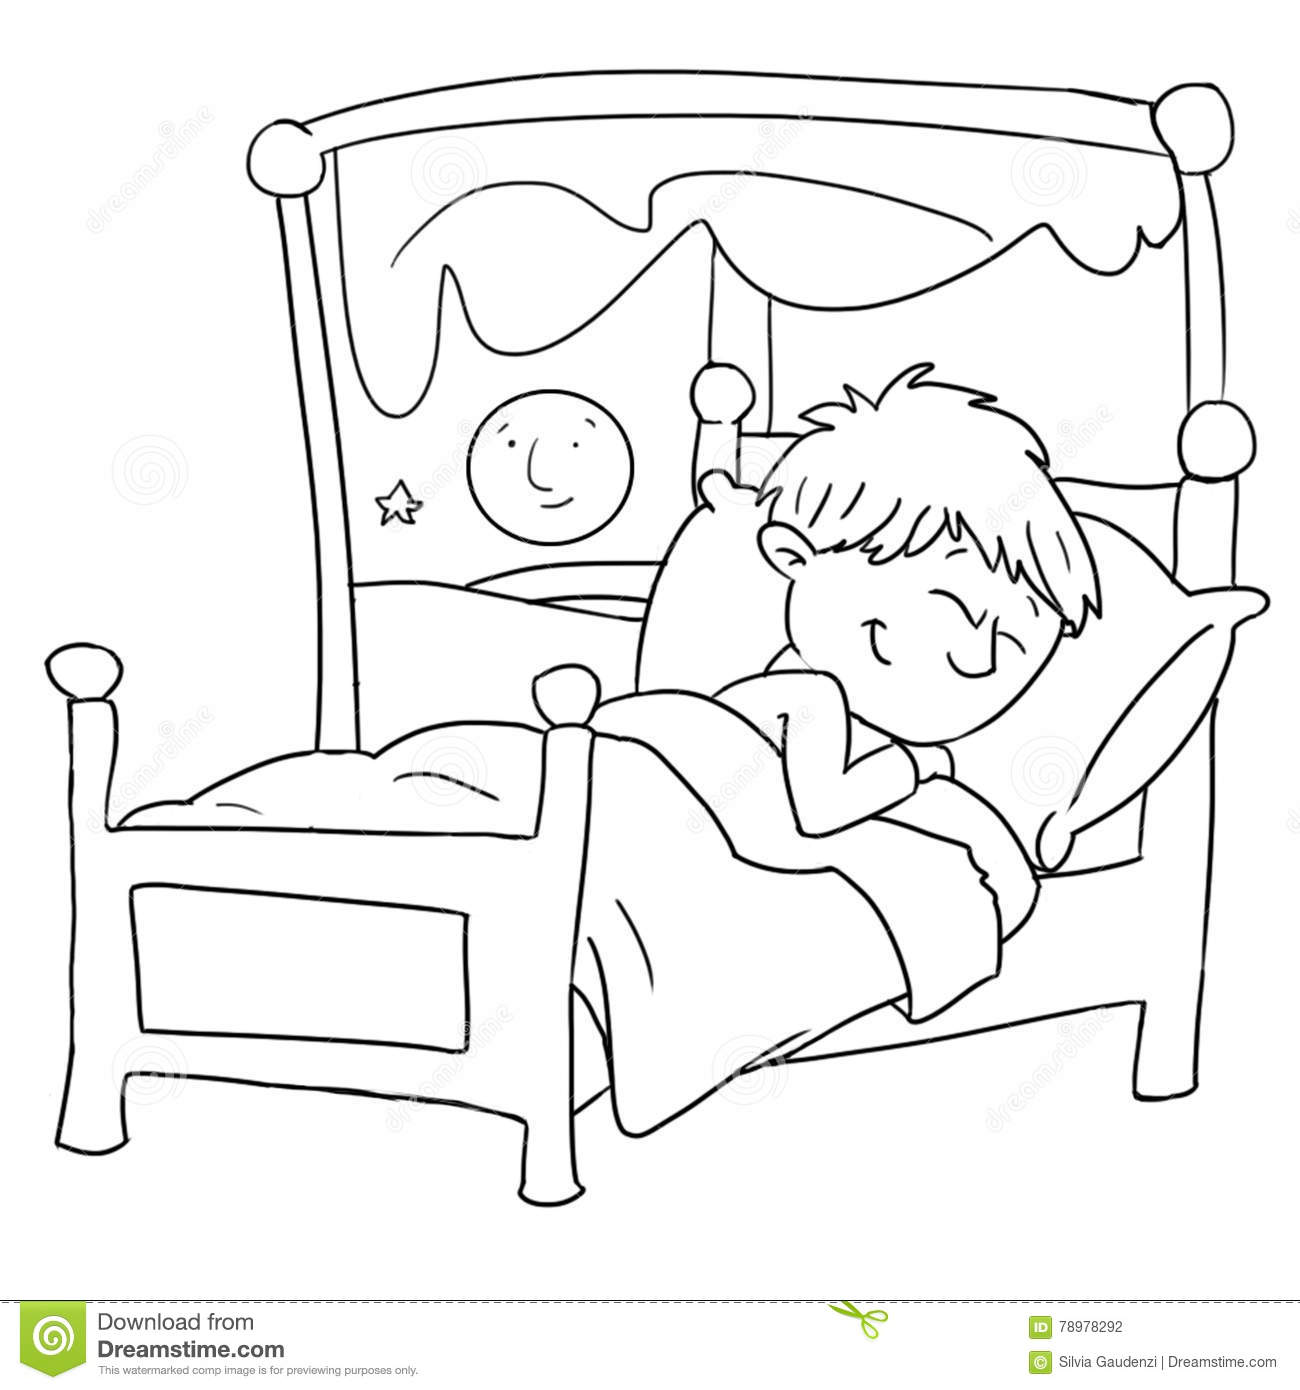 The Baby Is Sleeping In Her Bedchine Drawn By Color Stock